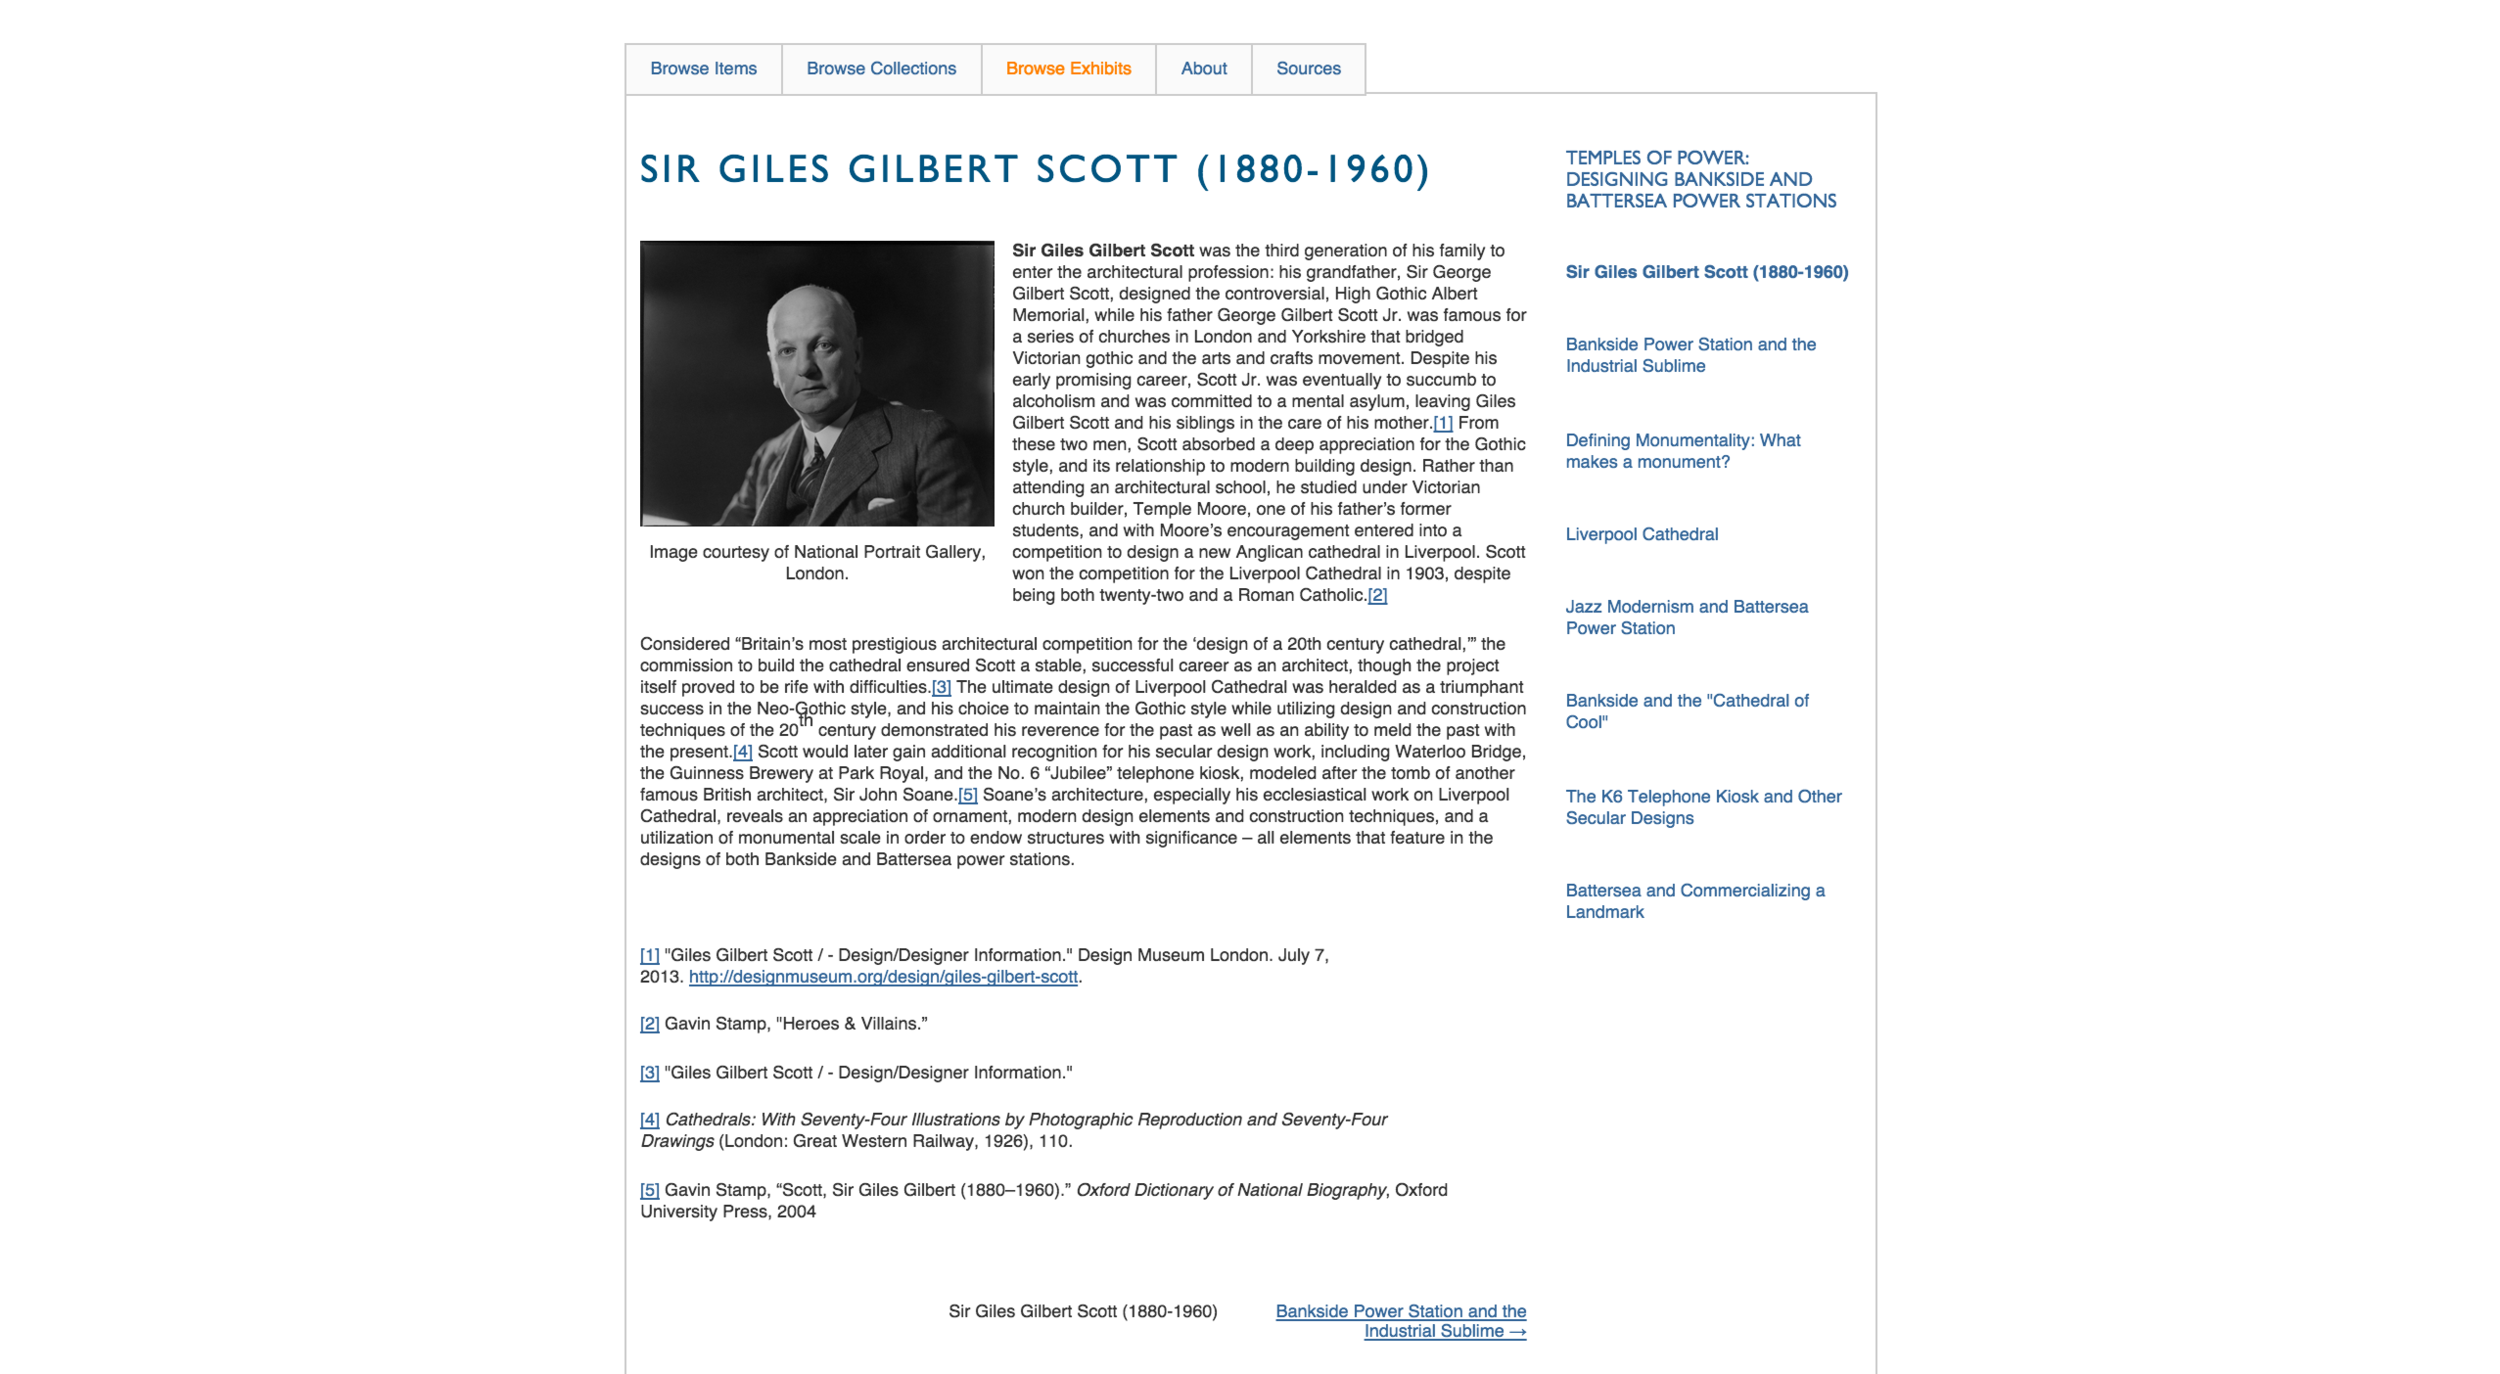 Exhibit chapter on Sir Giles Gilbert Scott, with imbedded image-artifact and sources. Exhibit chapters listed to the side.